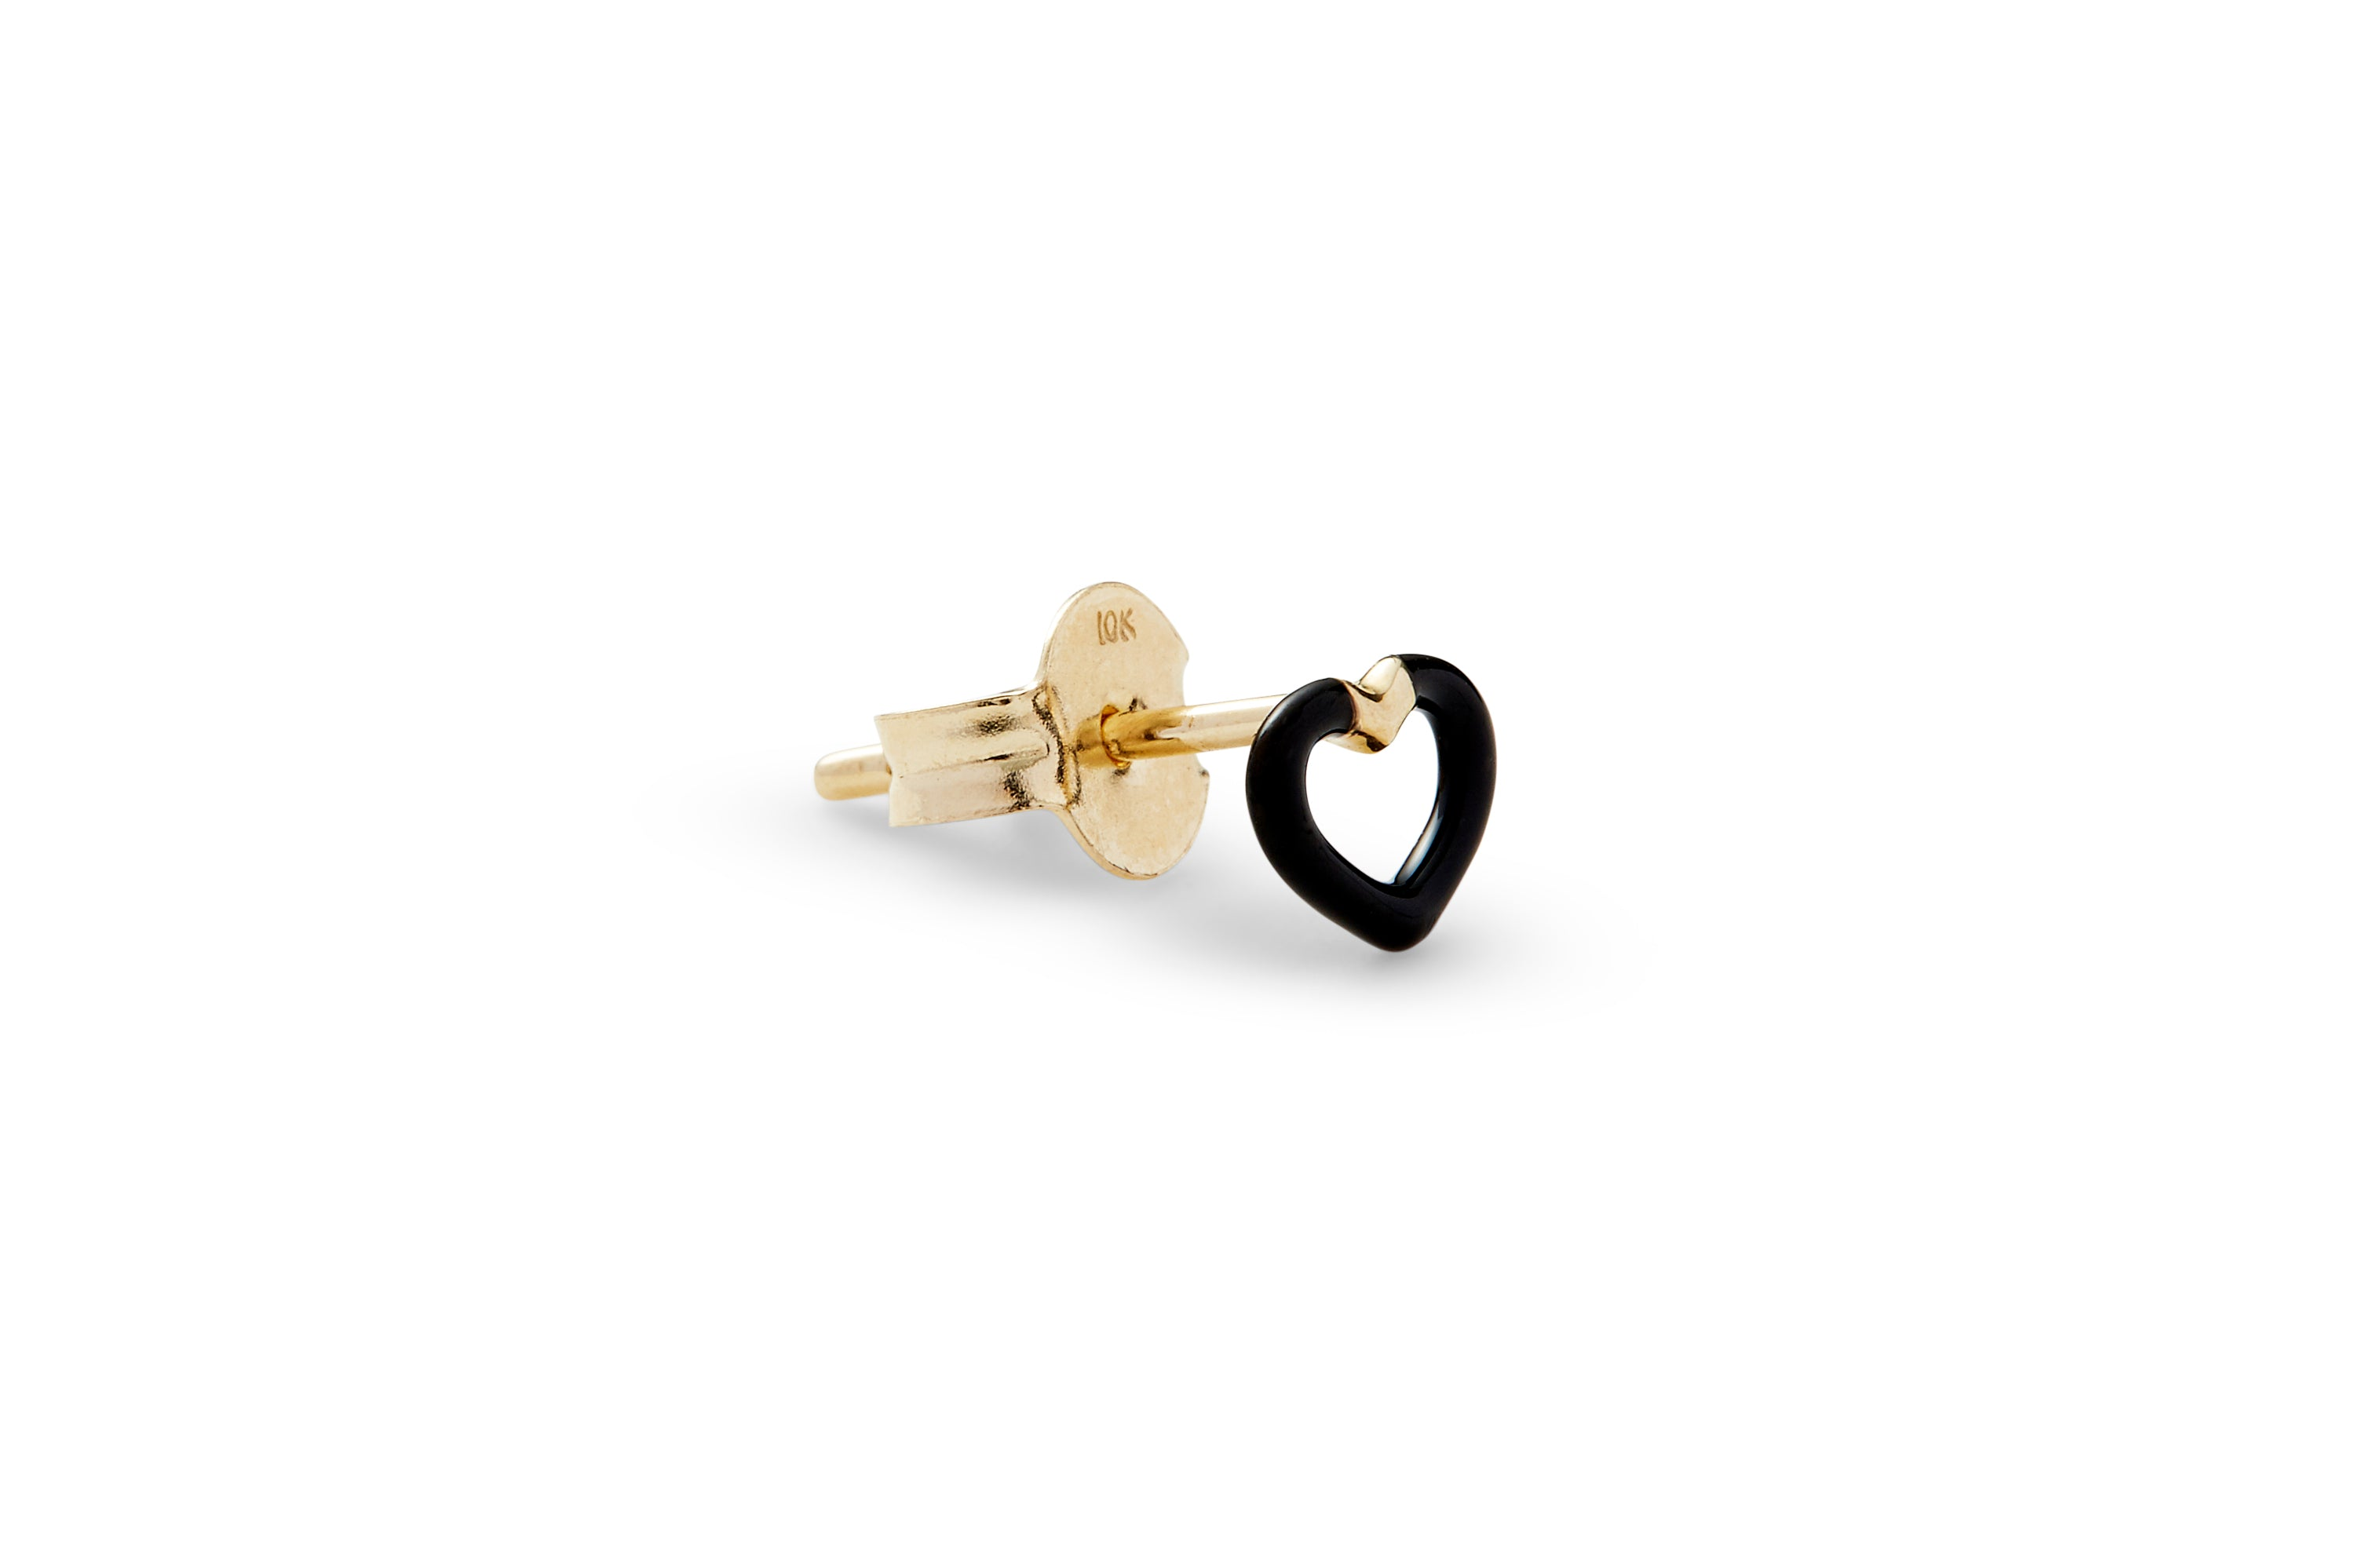 Single Black Enamel Heart Ear Stud